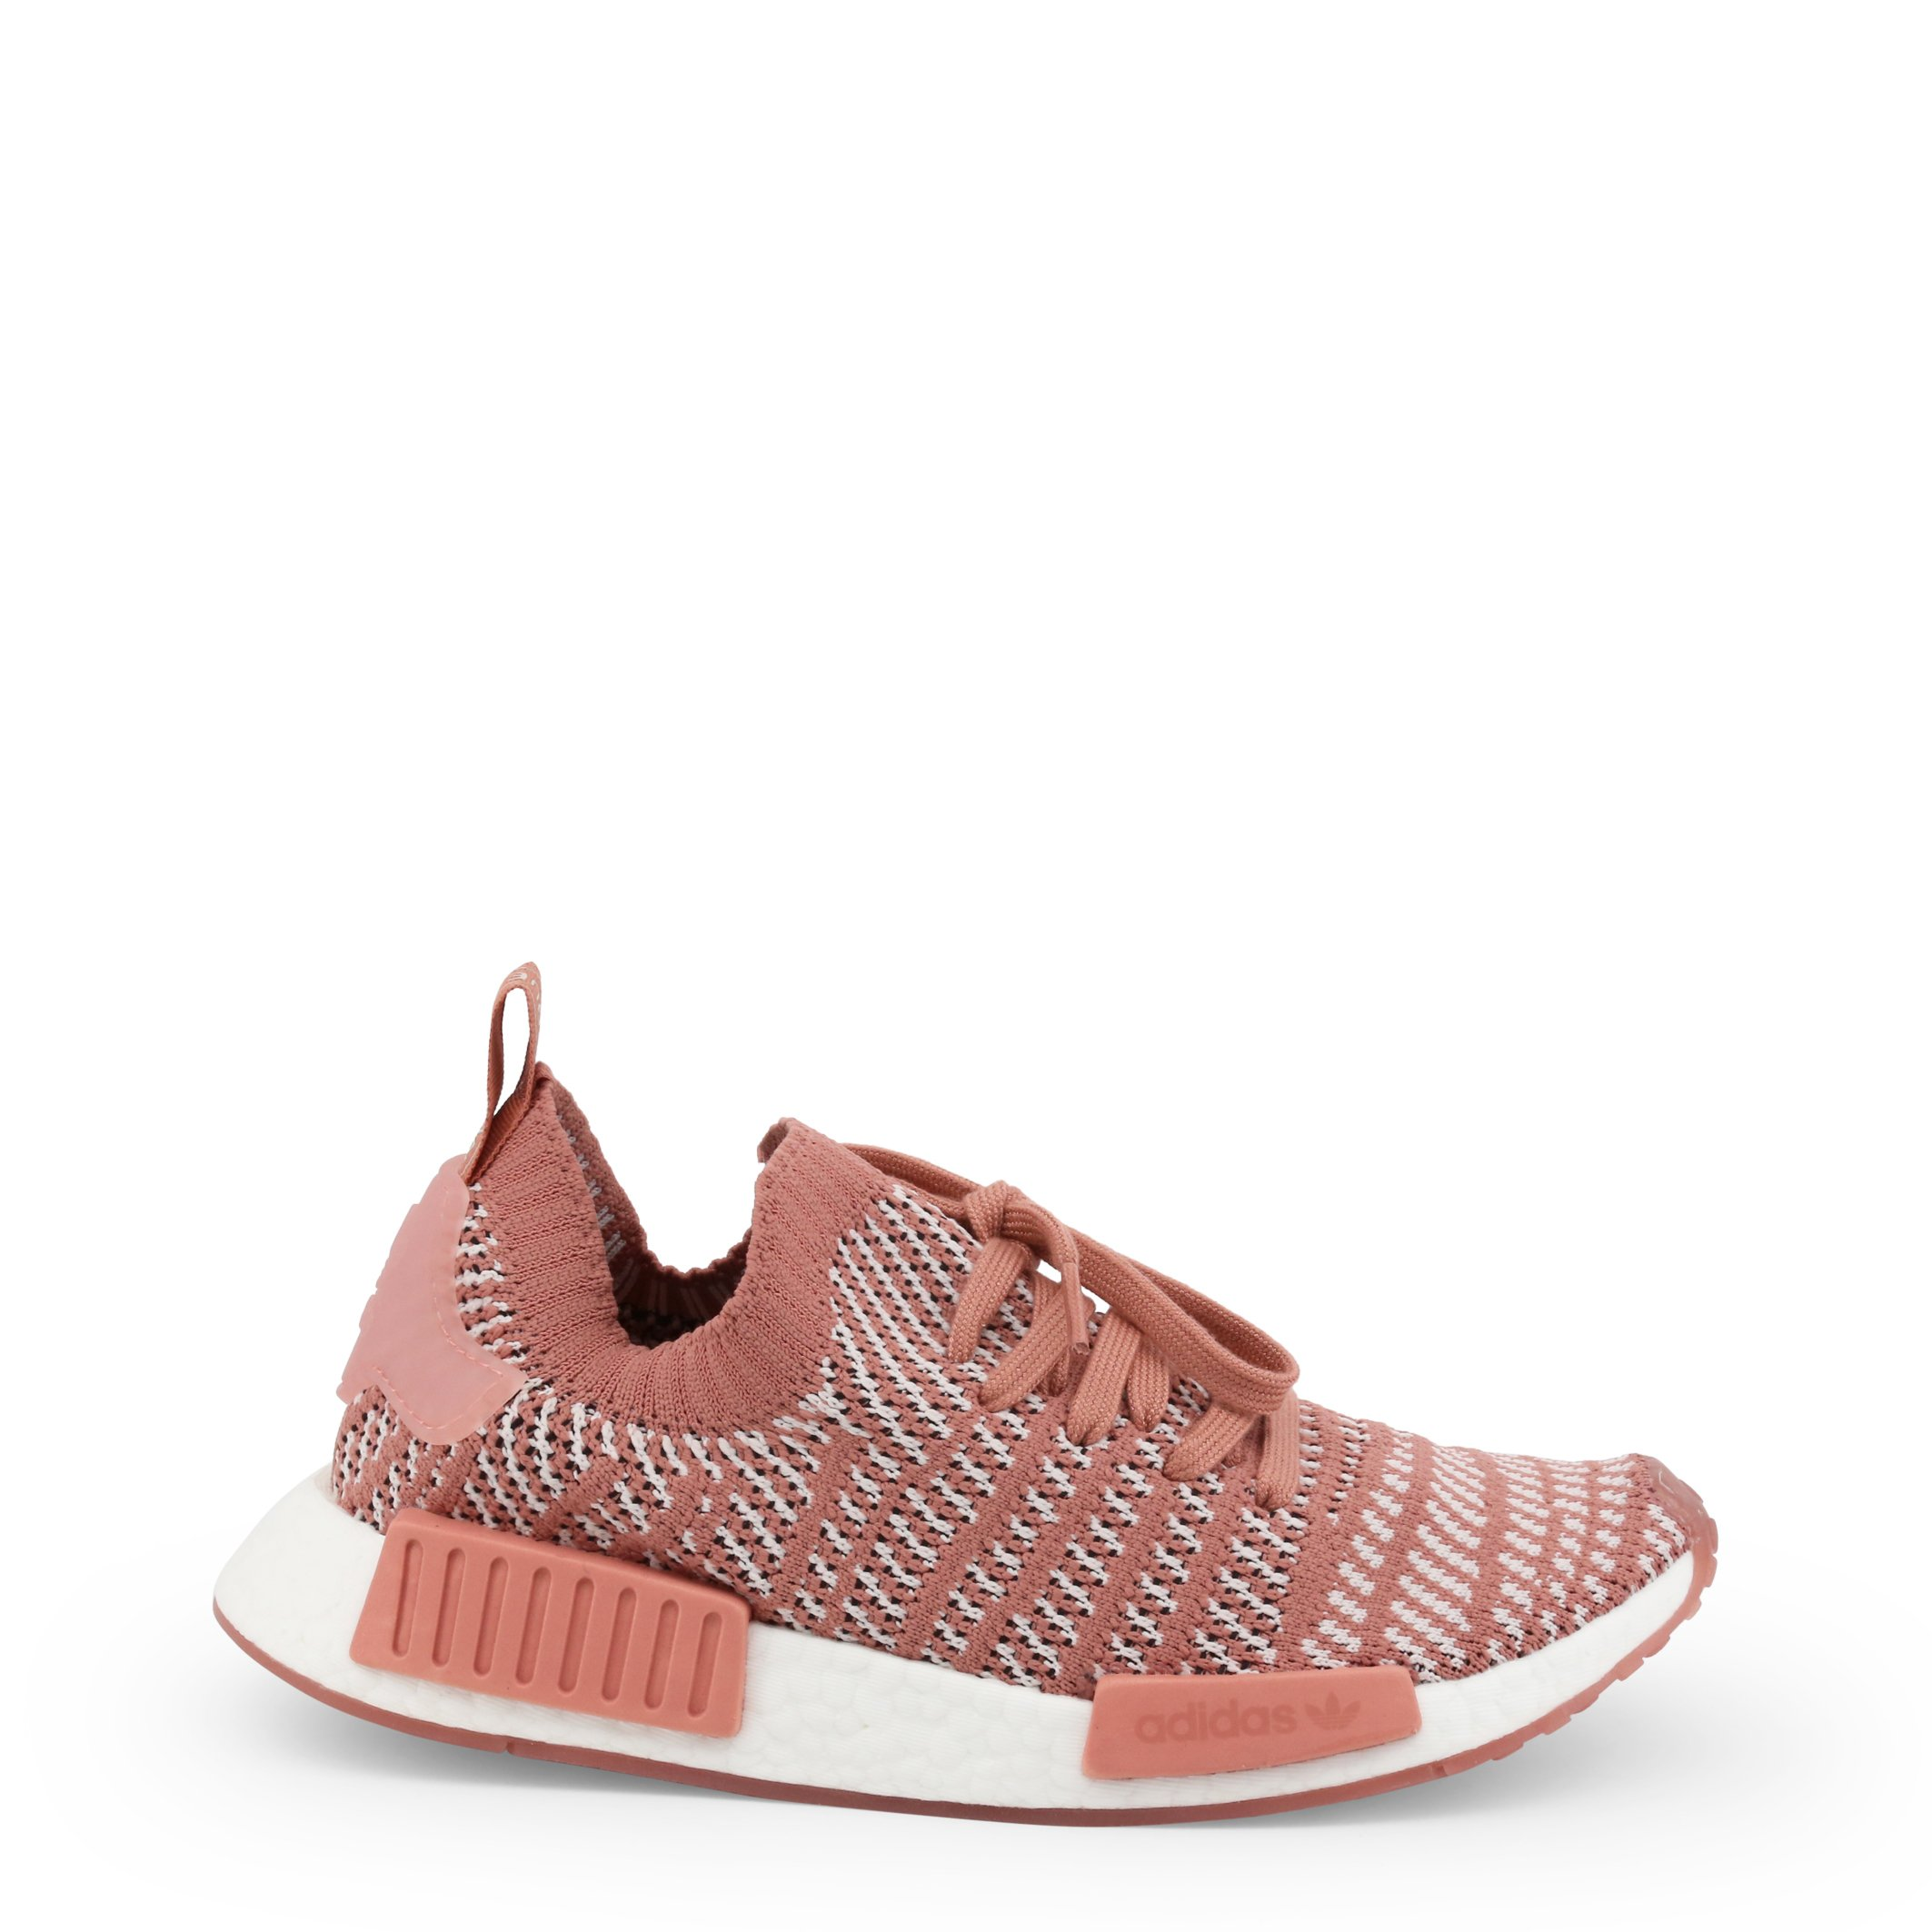 Adidas Unisex NMD Trainer Various Colours AC8326 - pink 5.5 UK